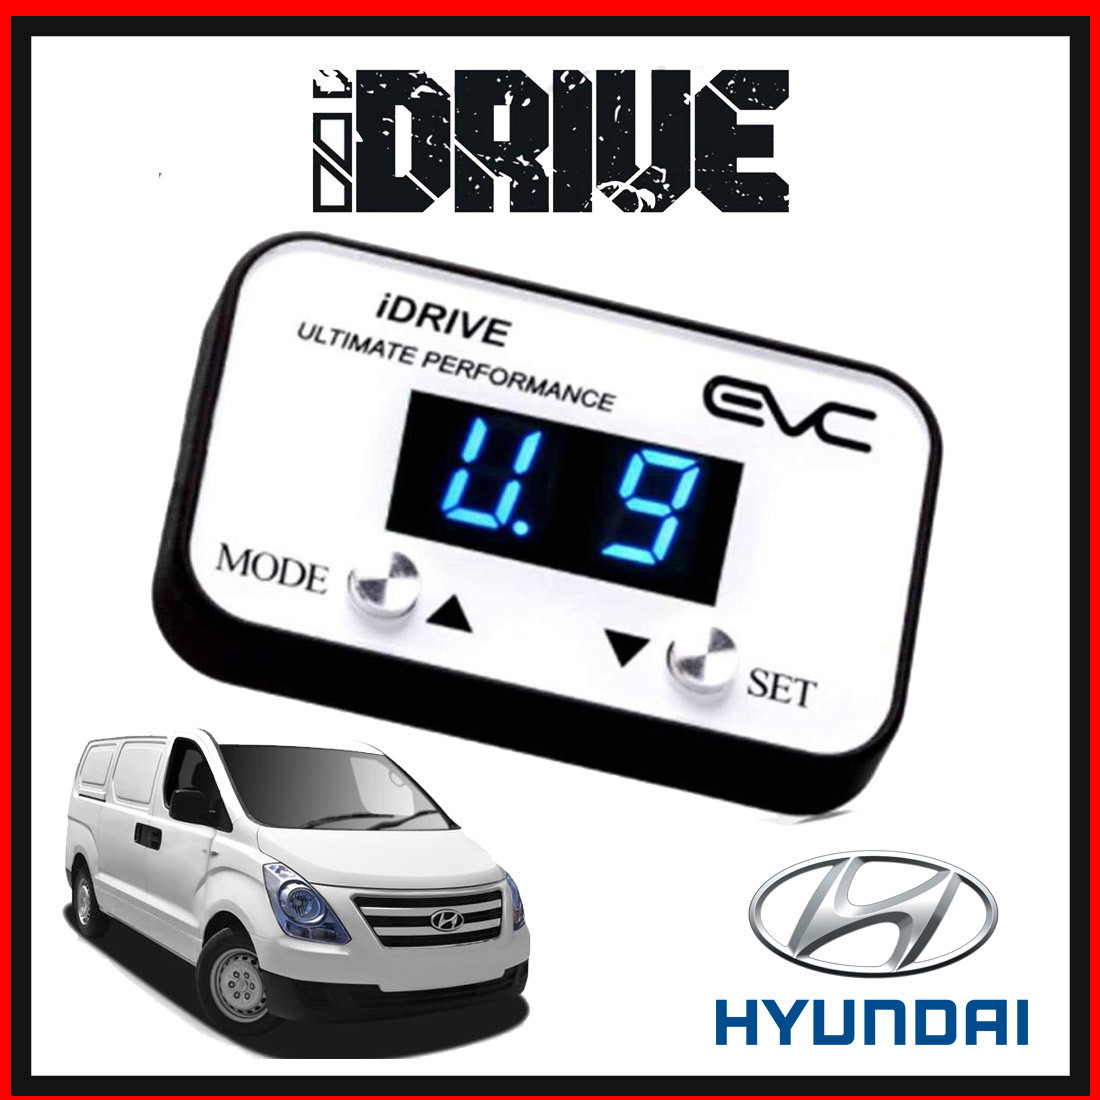 iDrive Windbooster Throttle Controller (Hyundai) image